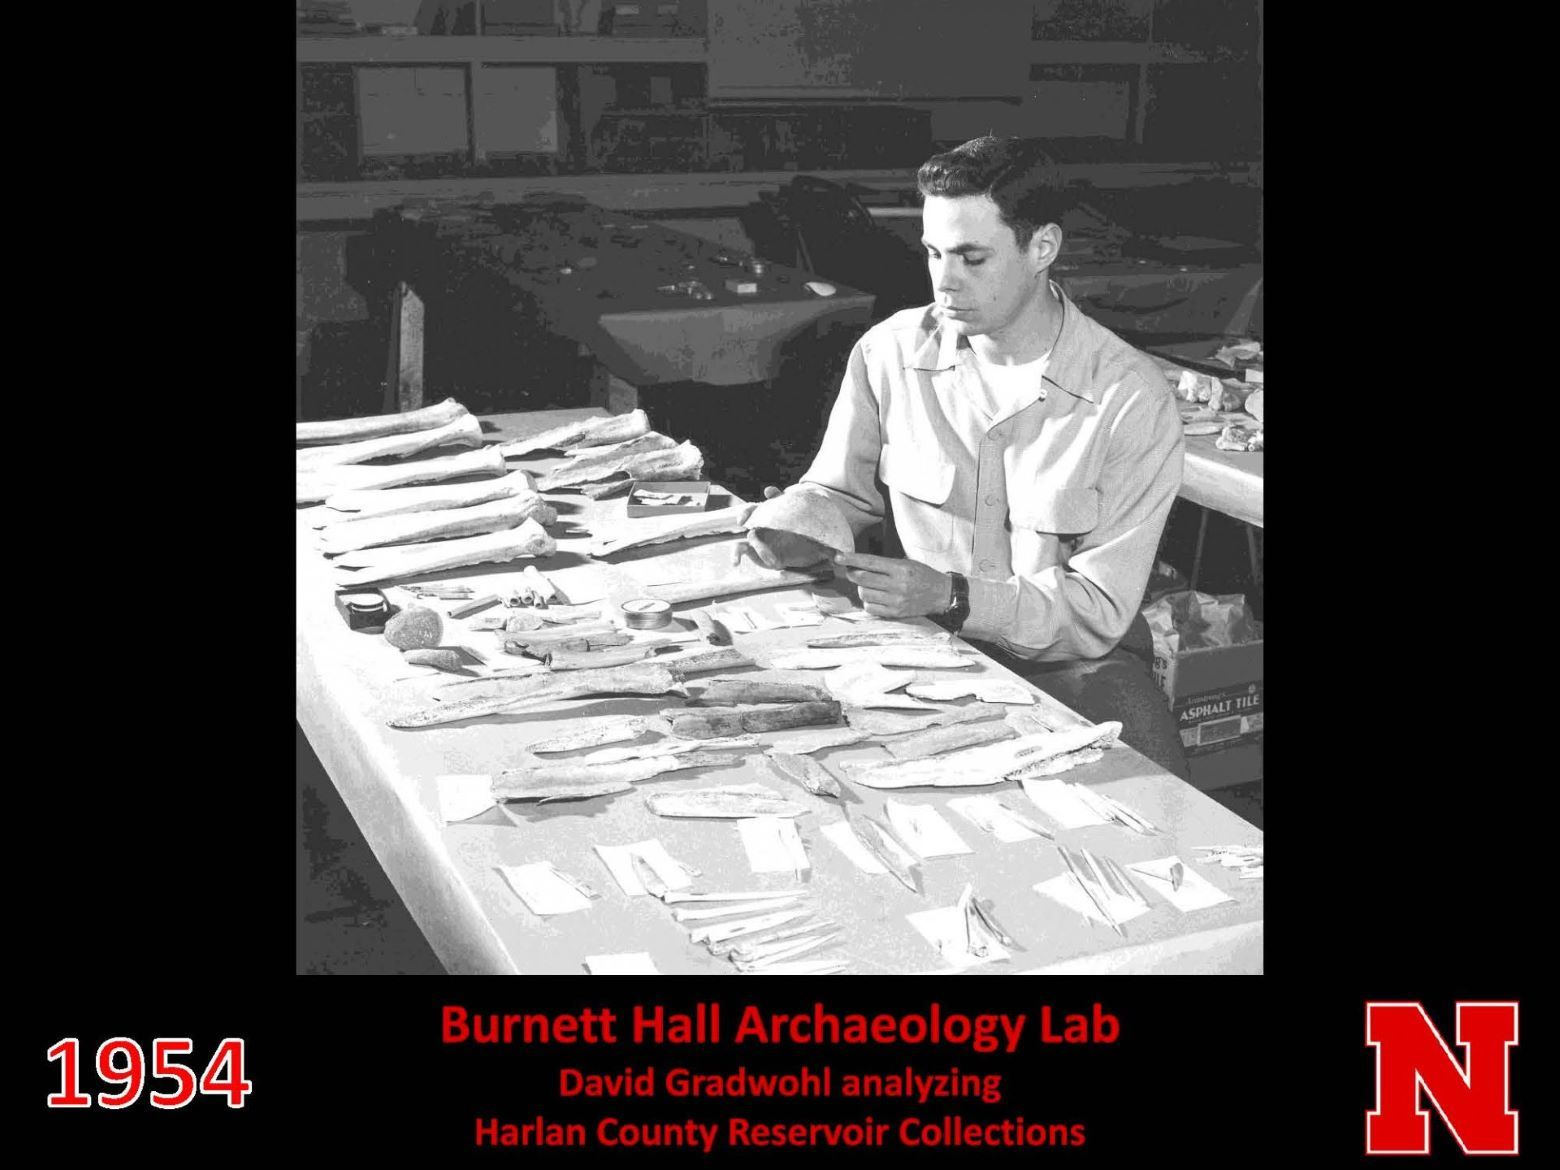 David Gradwohl analyzing Harlan County Reservoir collections